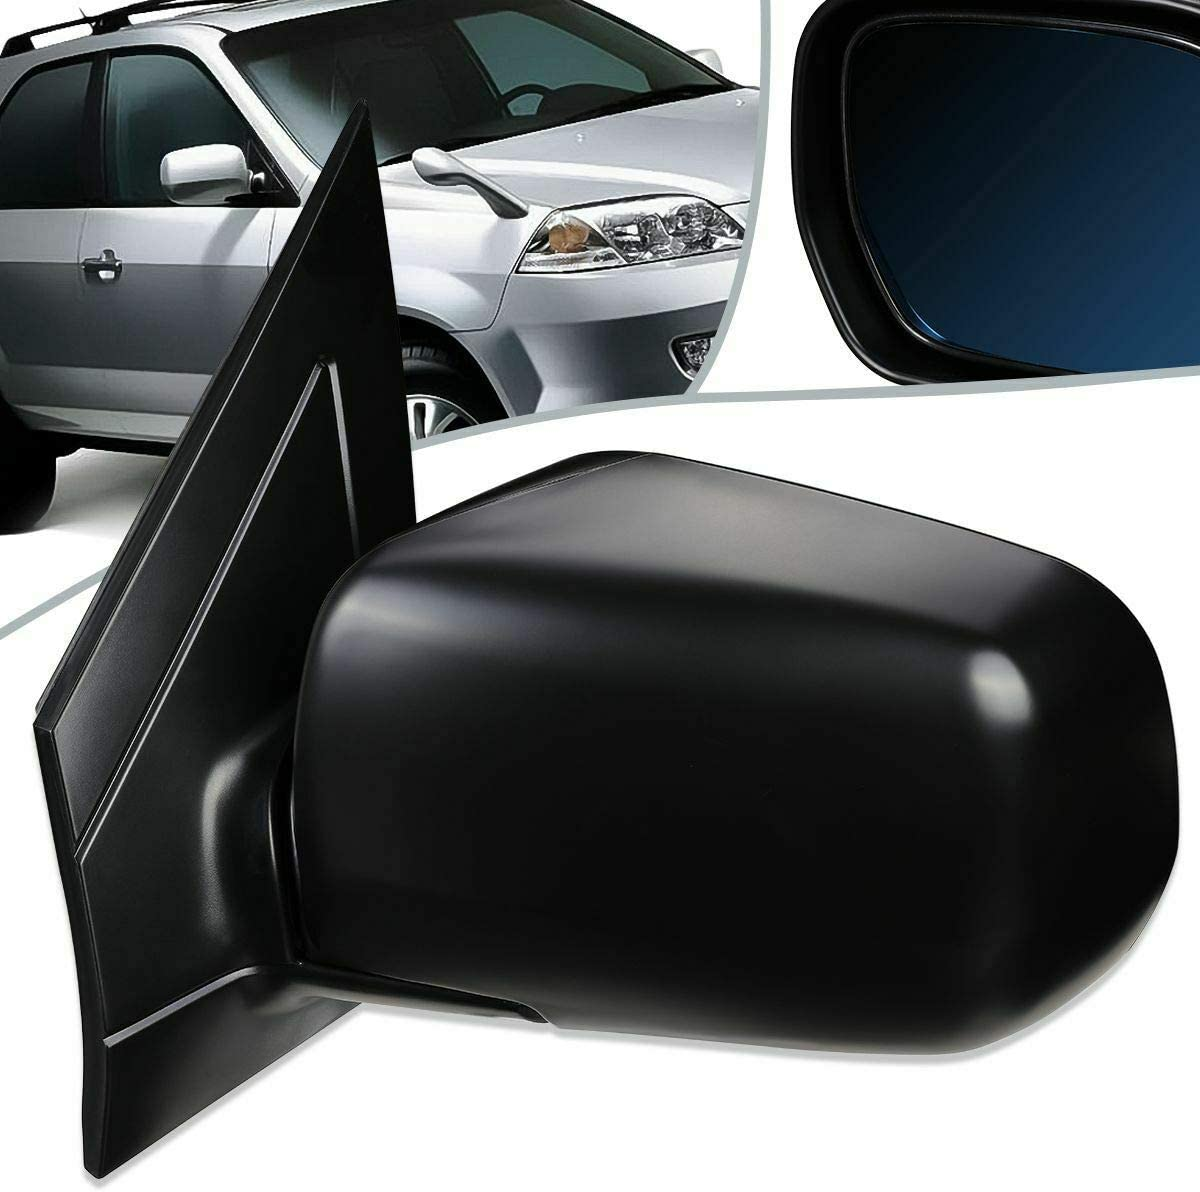 Automotive Towing Mirrors For 2002-2006 Utility New arrival OE Sport St Max 62% OFF MDX